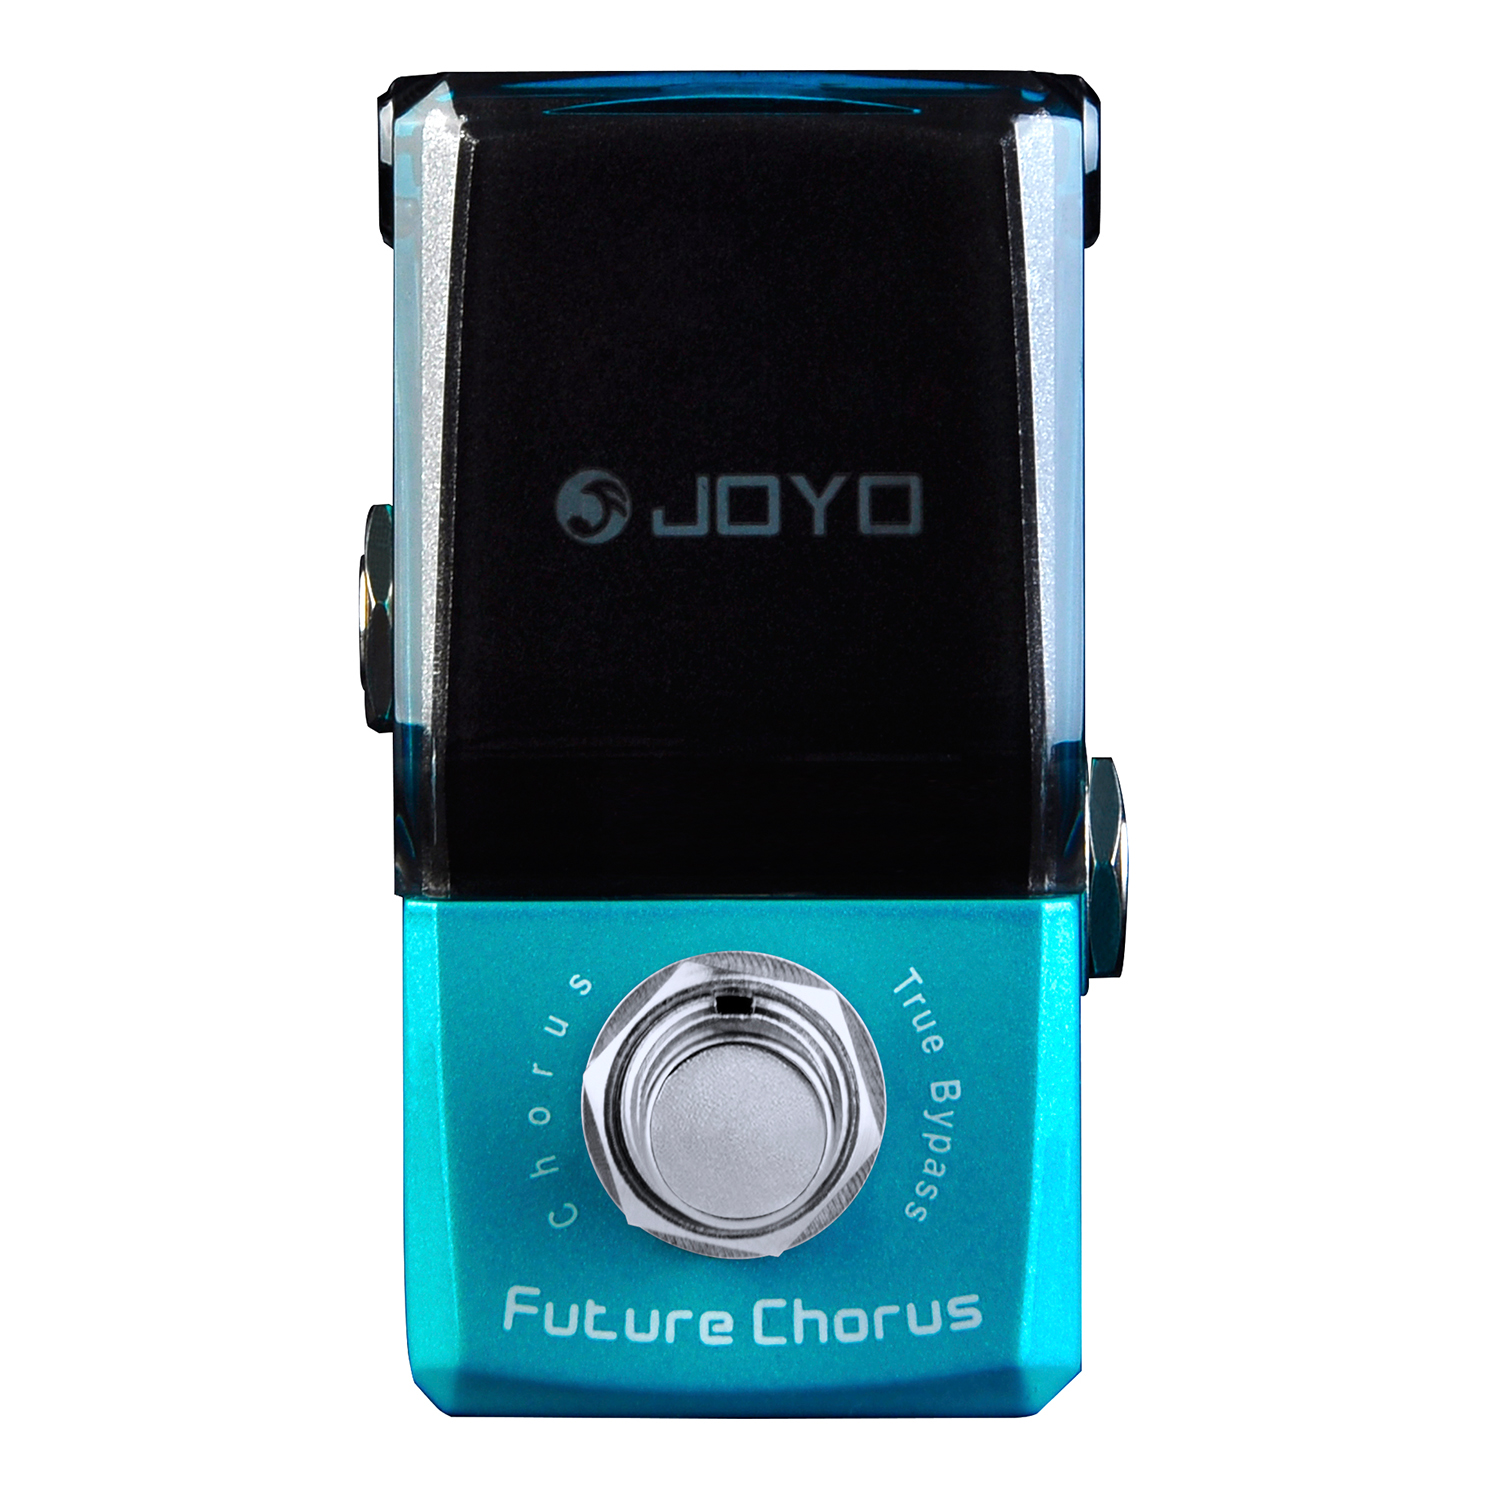 Joyo Future Chorus Guitar Effect Pedal True Bypass Ironman JF-316 Effects for Electric Guitar joyo jf 37 analog chorus electric guitar effect pedal true bypass design adjustable tone